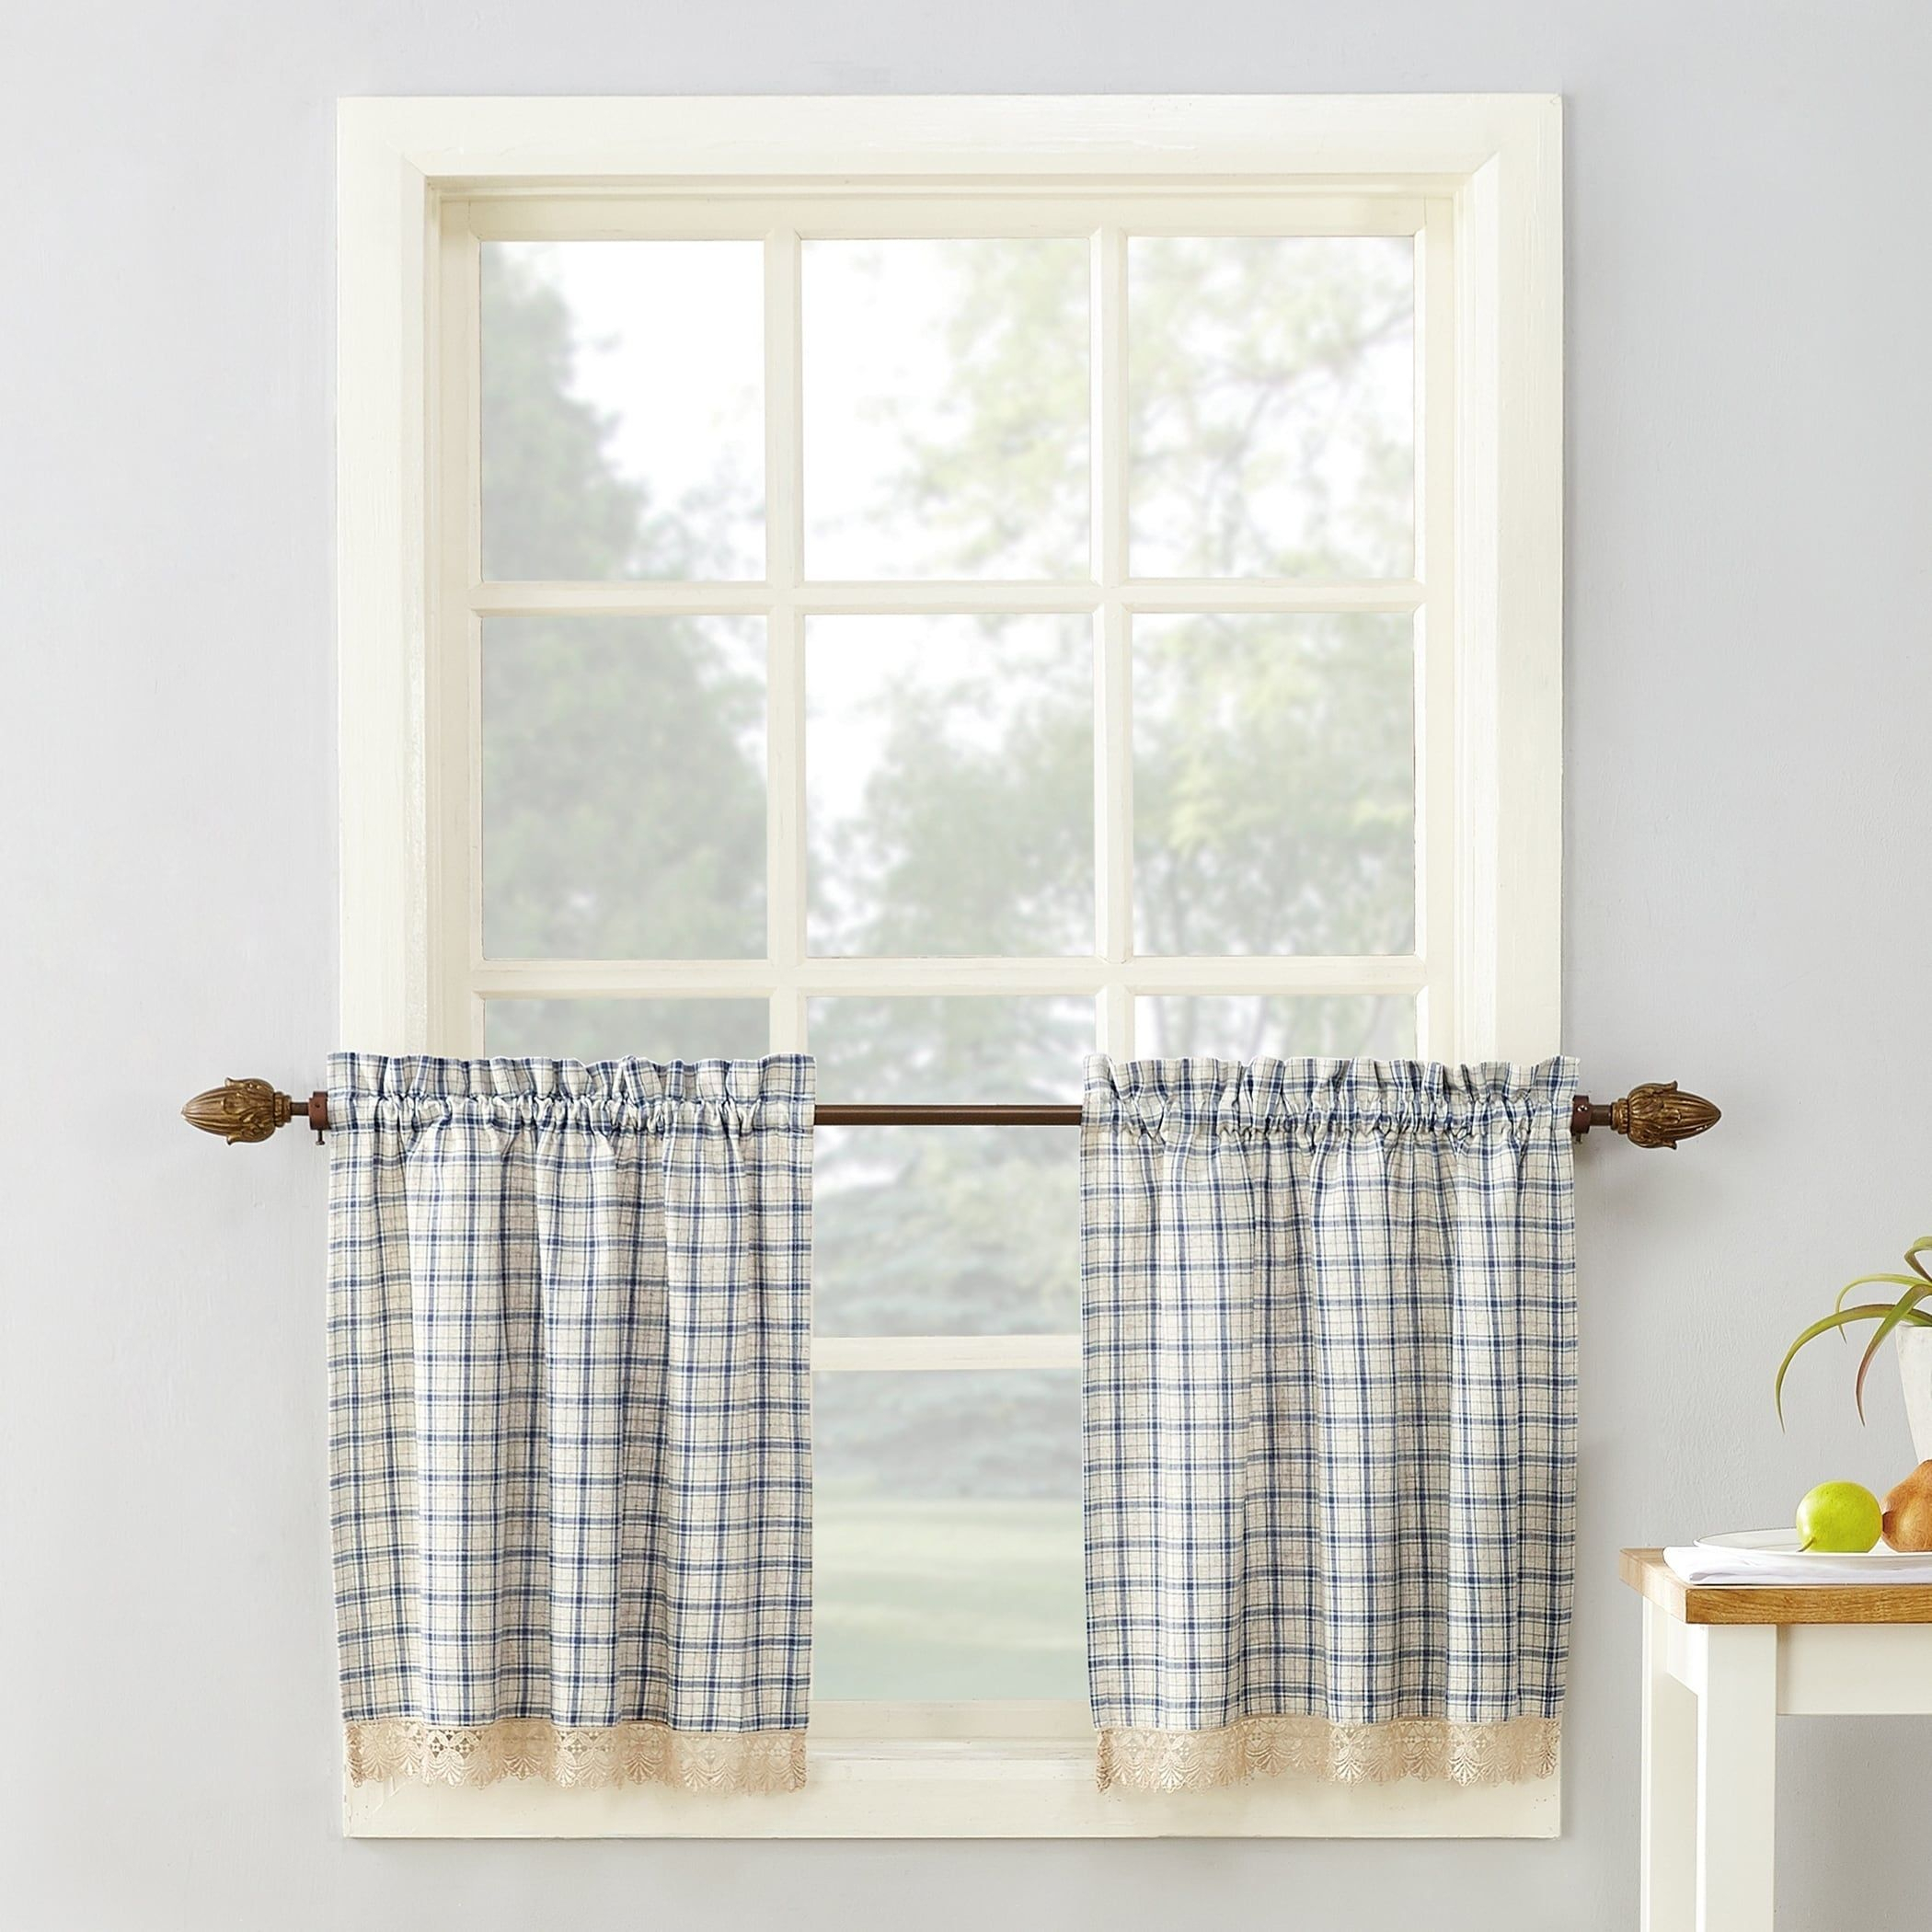 12+ Impressive Curtains Ideas Valance Ideas In 2019 | Drop Within Twill 3 Piece Kitchen Curtain Tier Sets (Gallery 8 of 20)